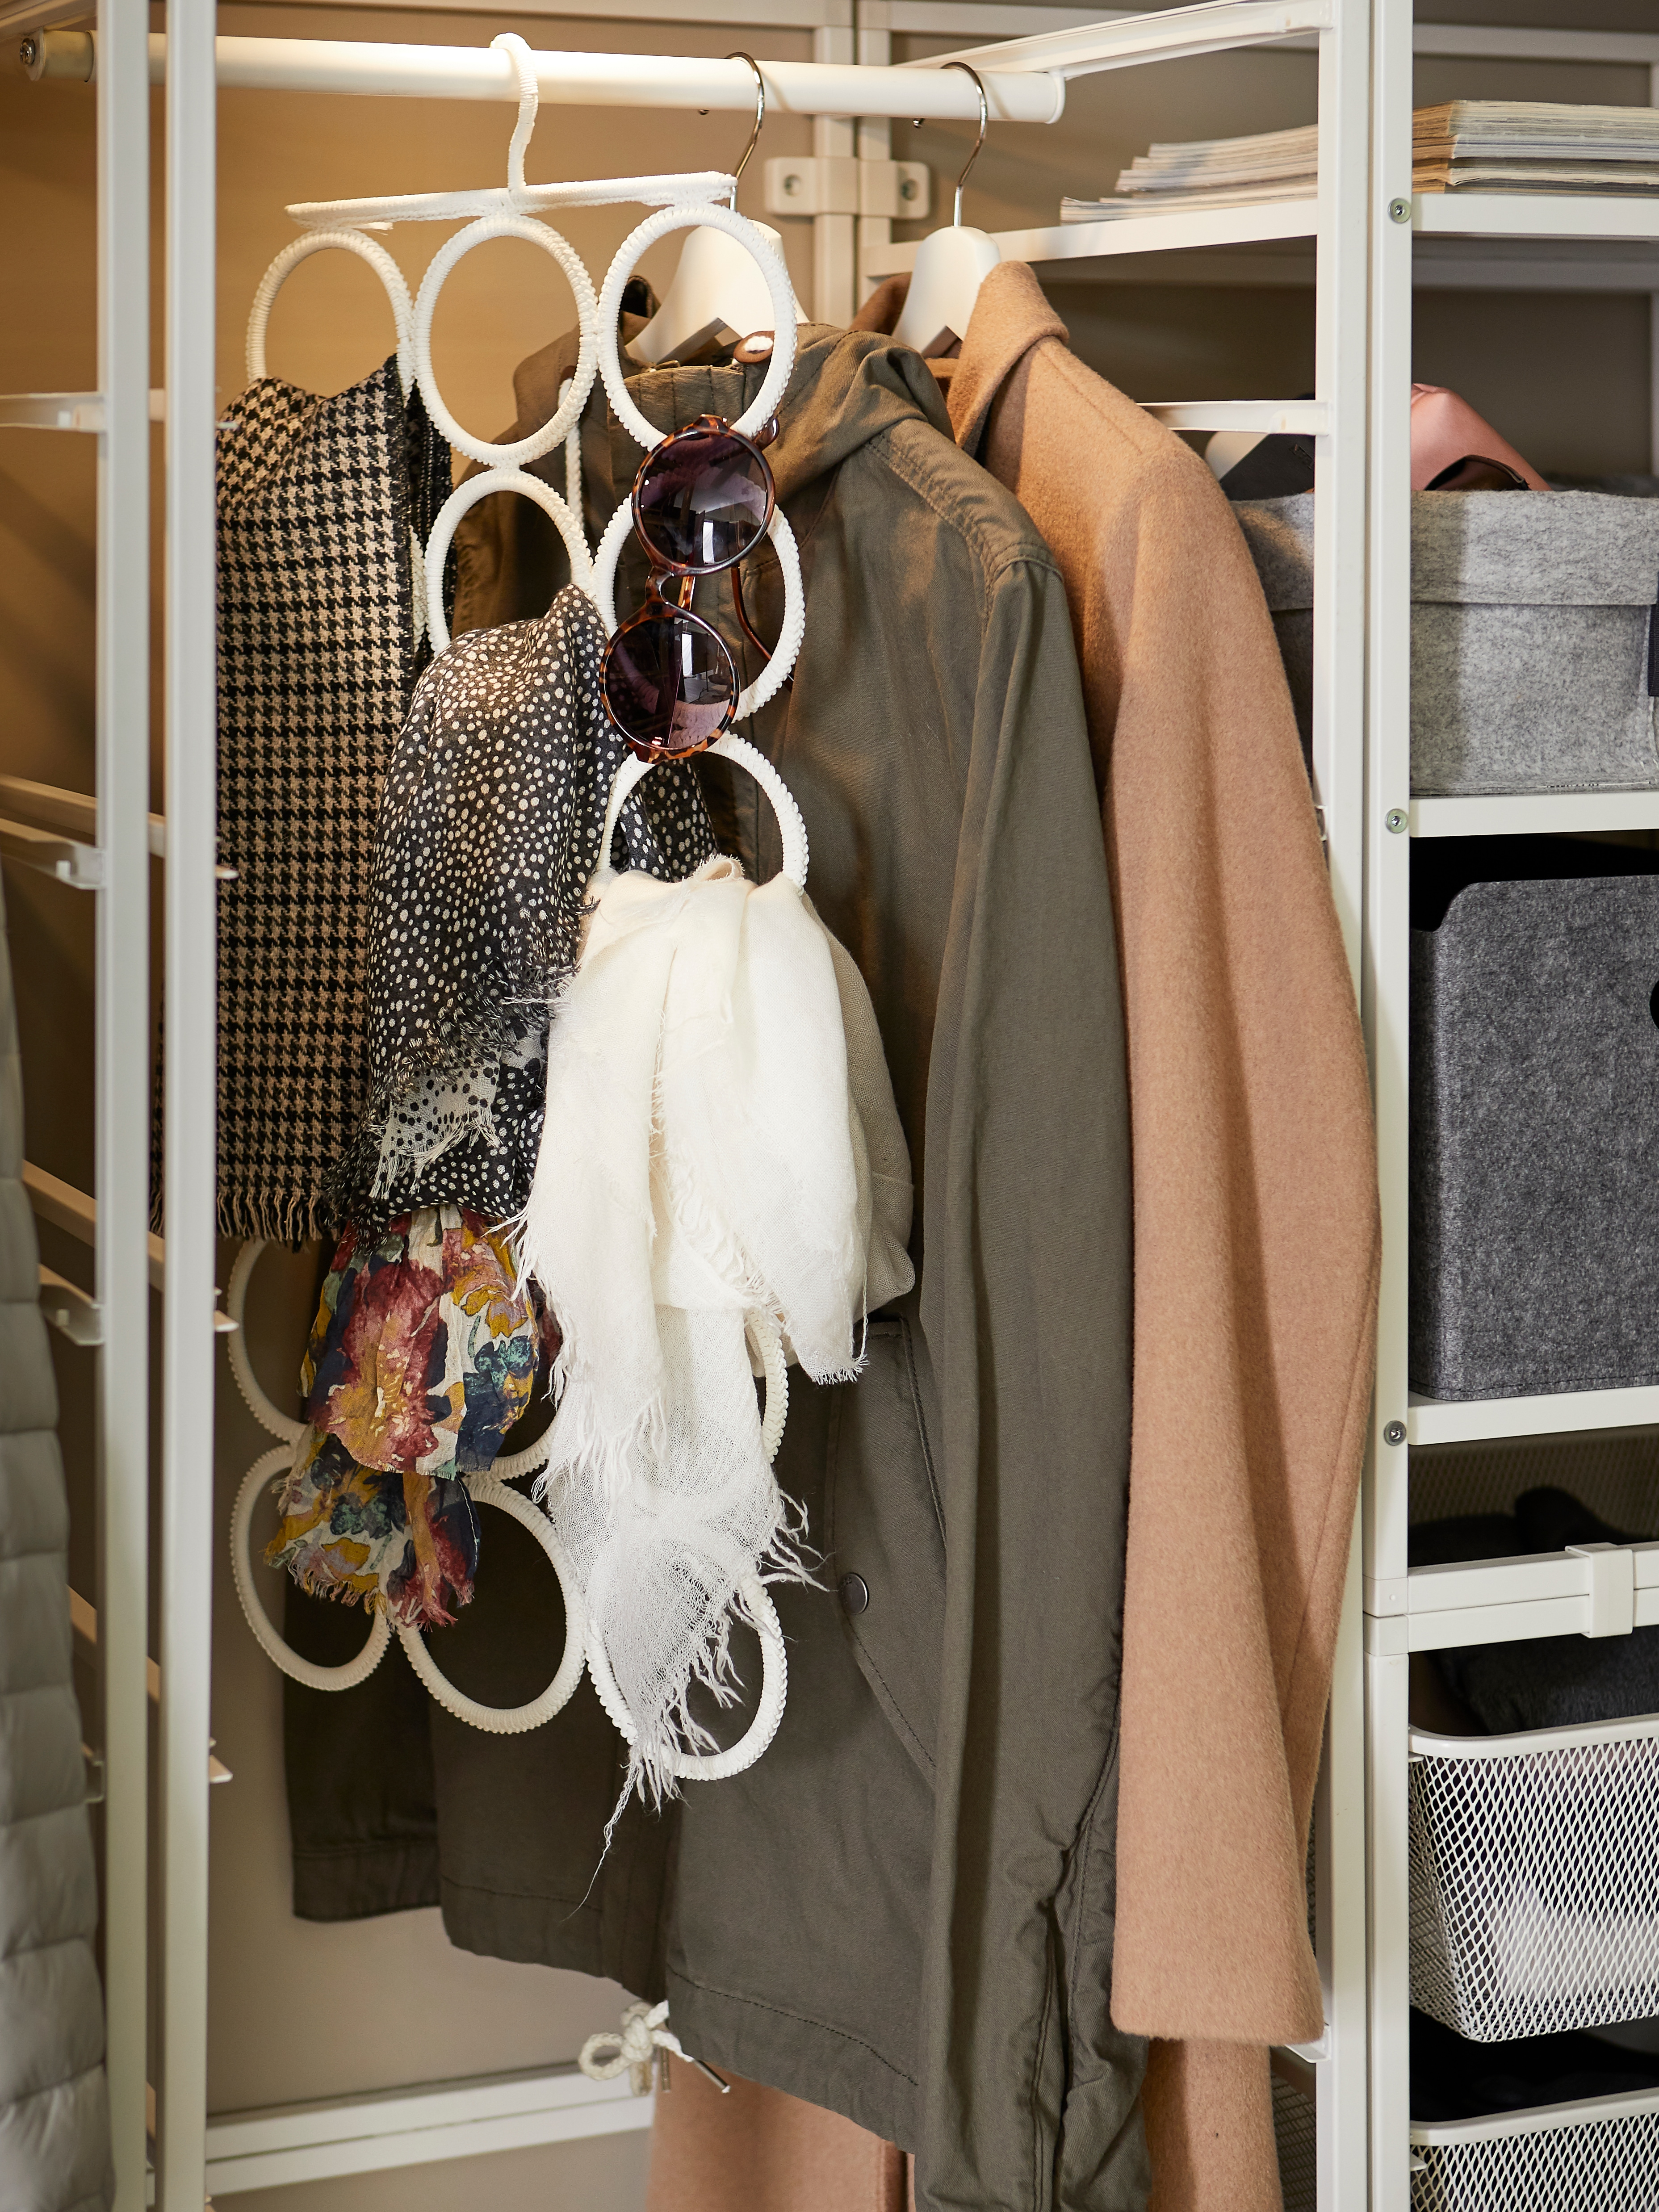 A clothes rail with coats and a white IKEA KOMPLEMENT multi-use hanger that has rings holding sunglasses and shawls.